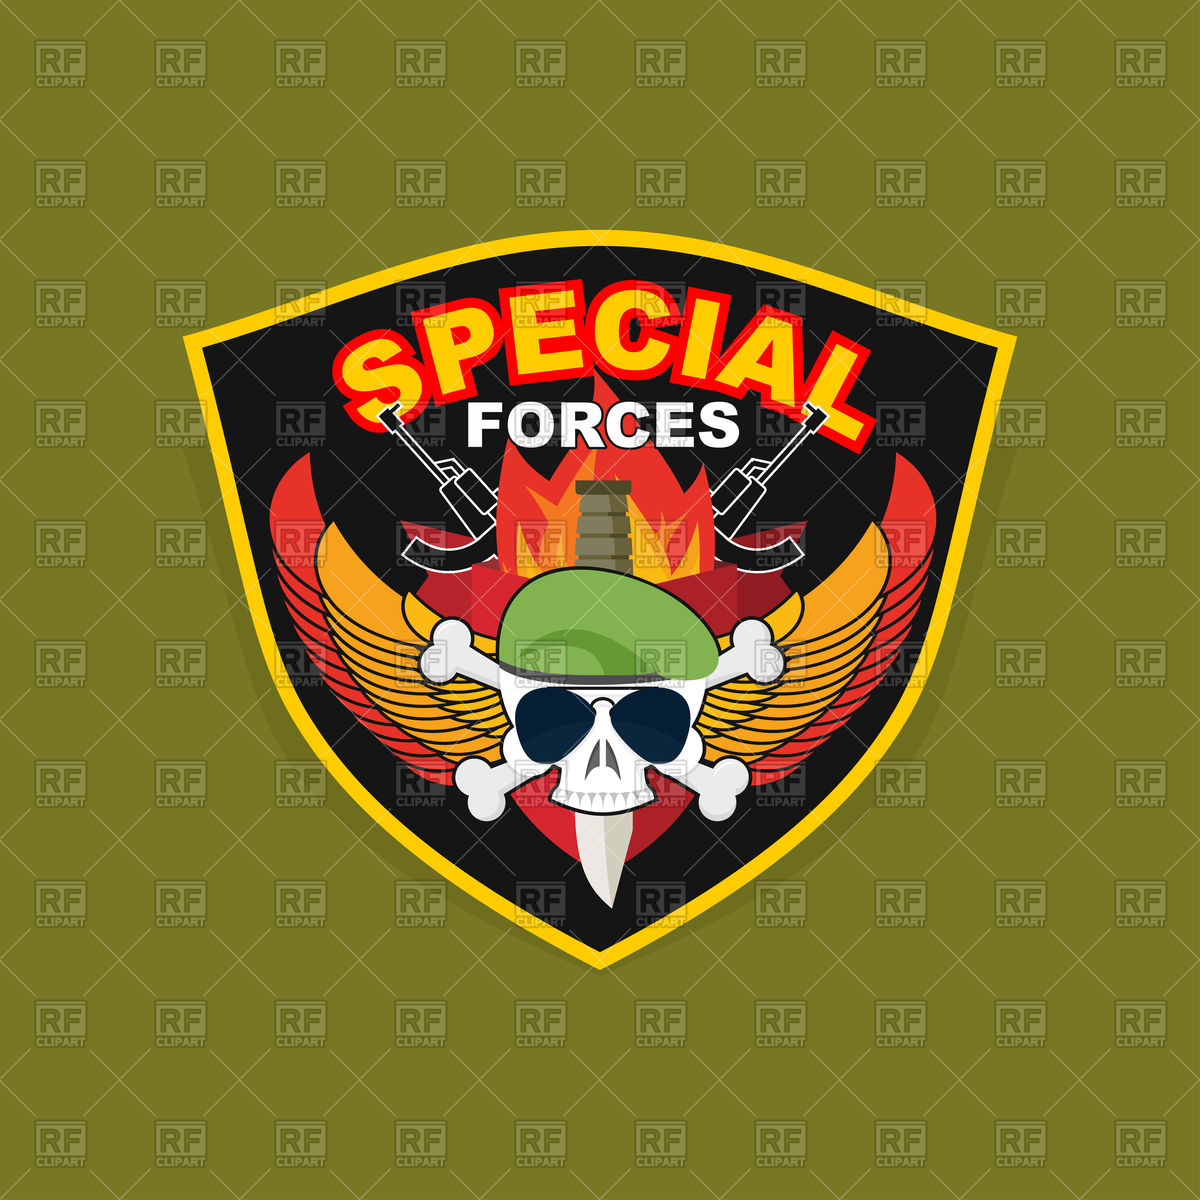 1200x1200 Military Emblem With Skull And Weapon, Wings On Shield, Special